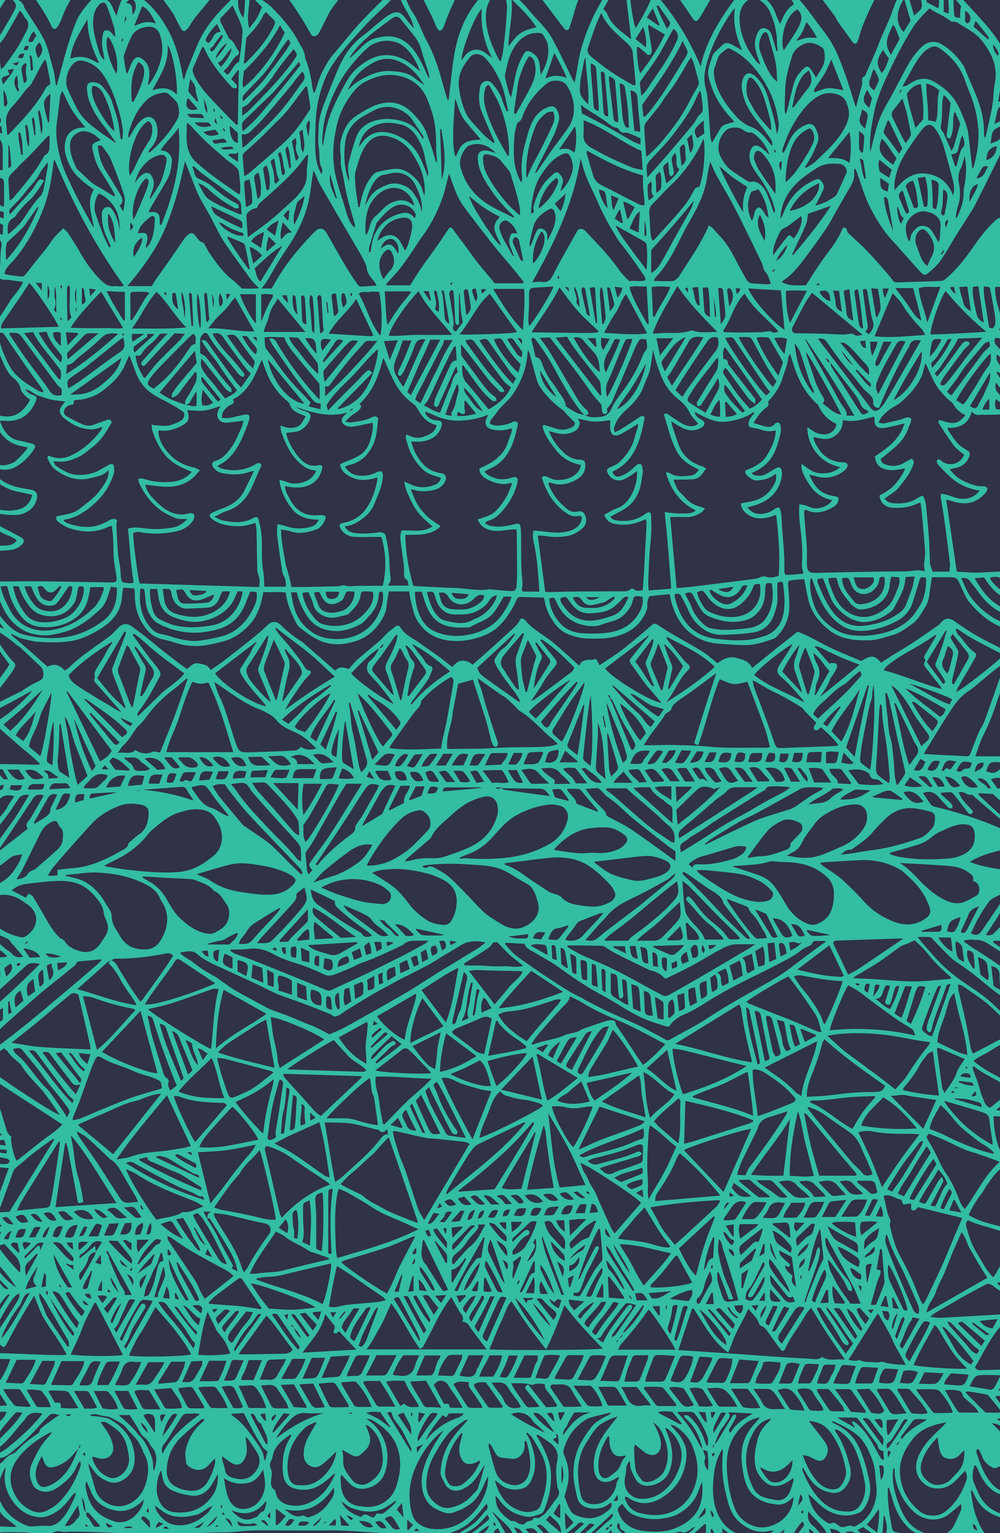 PATTERNS & ILLUSTRATION - COMING SOON